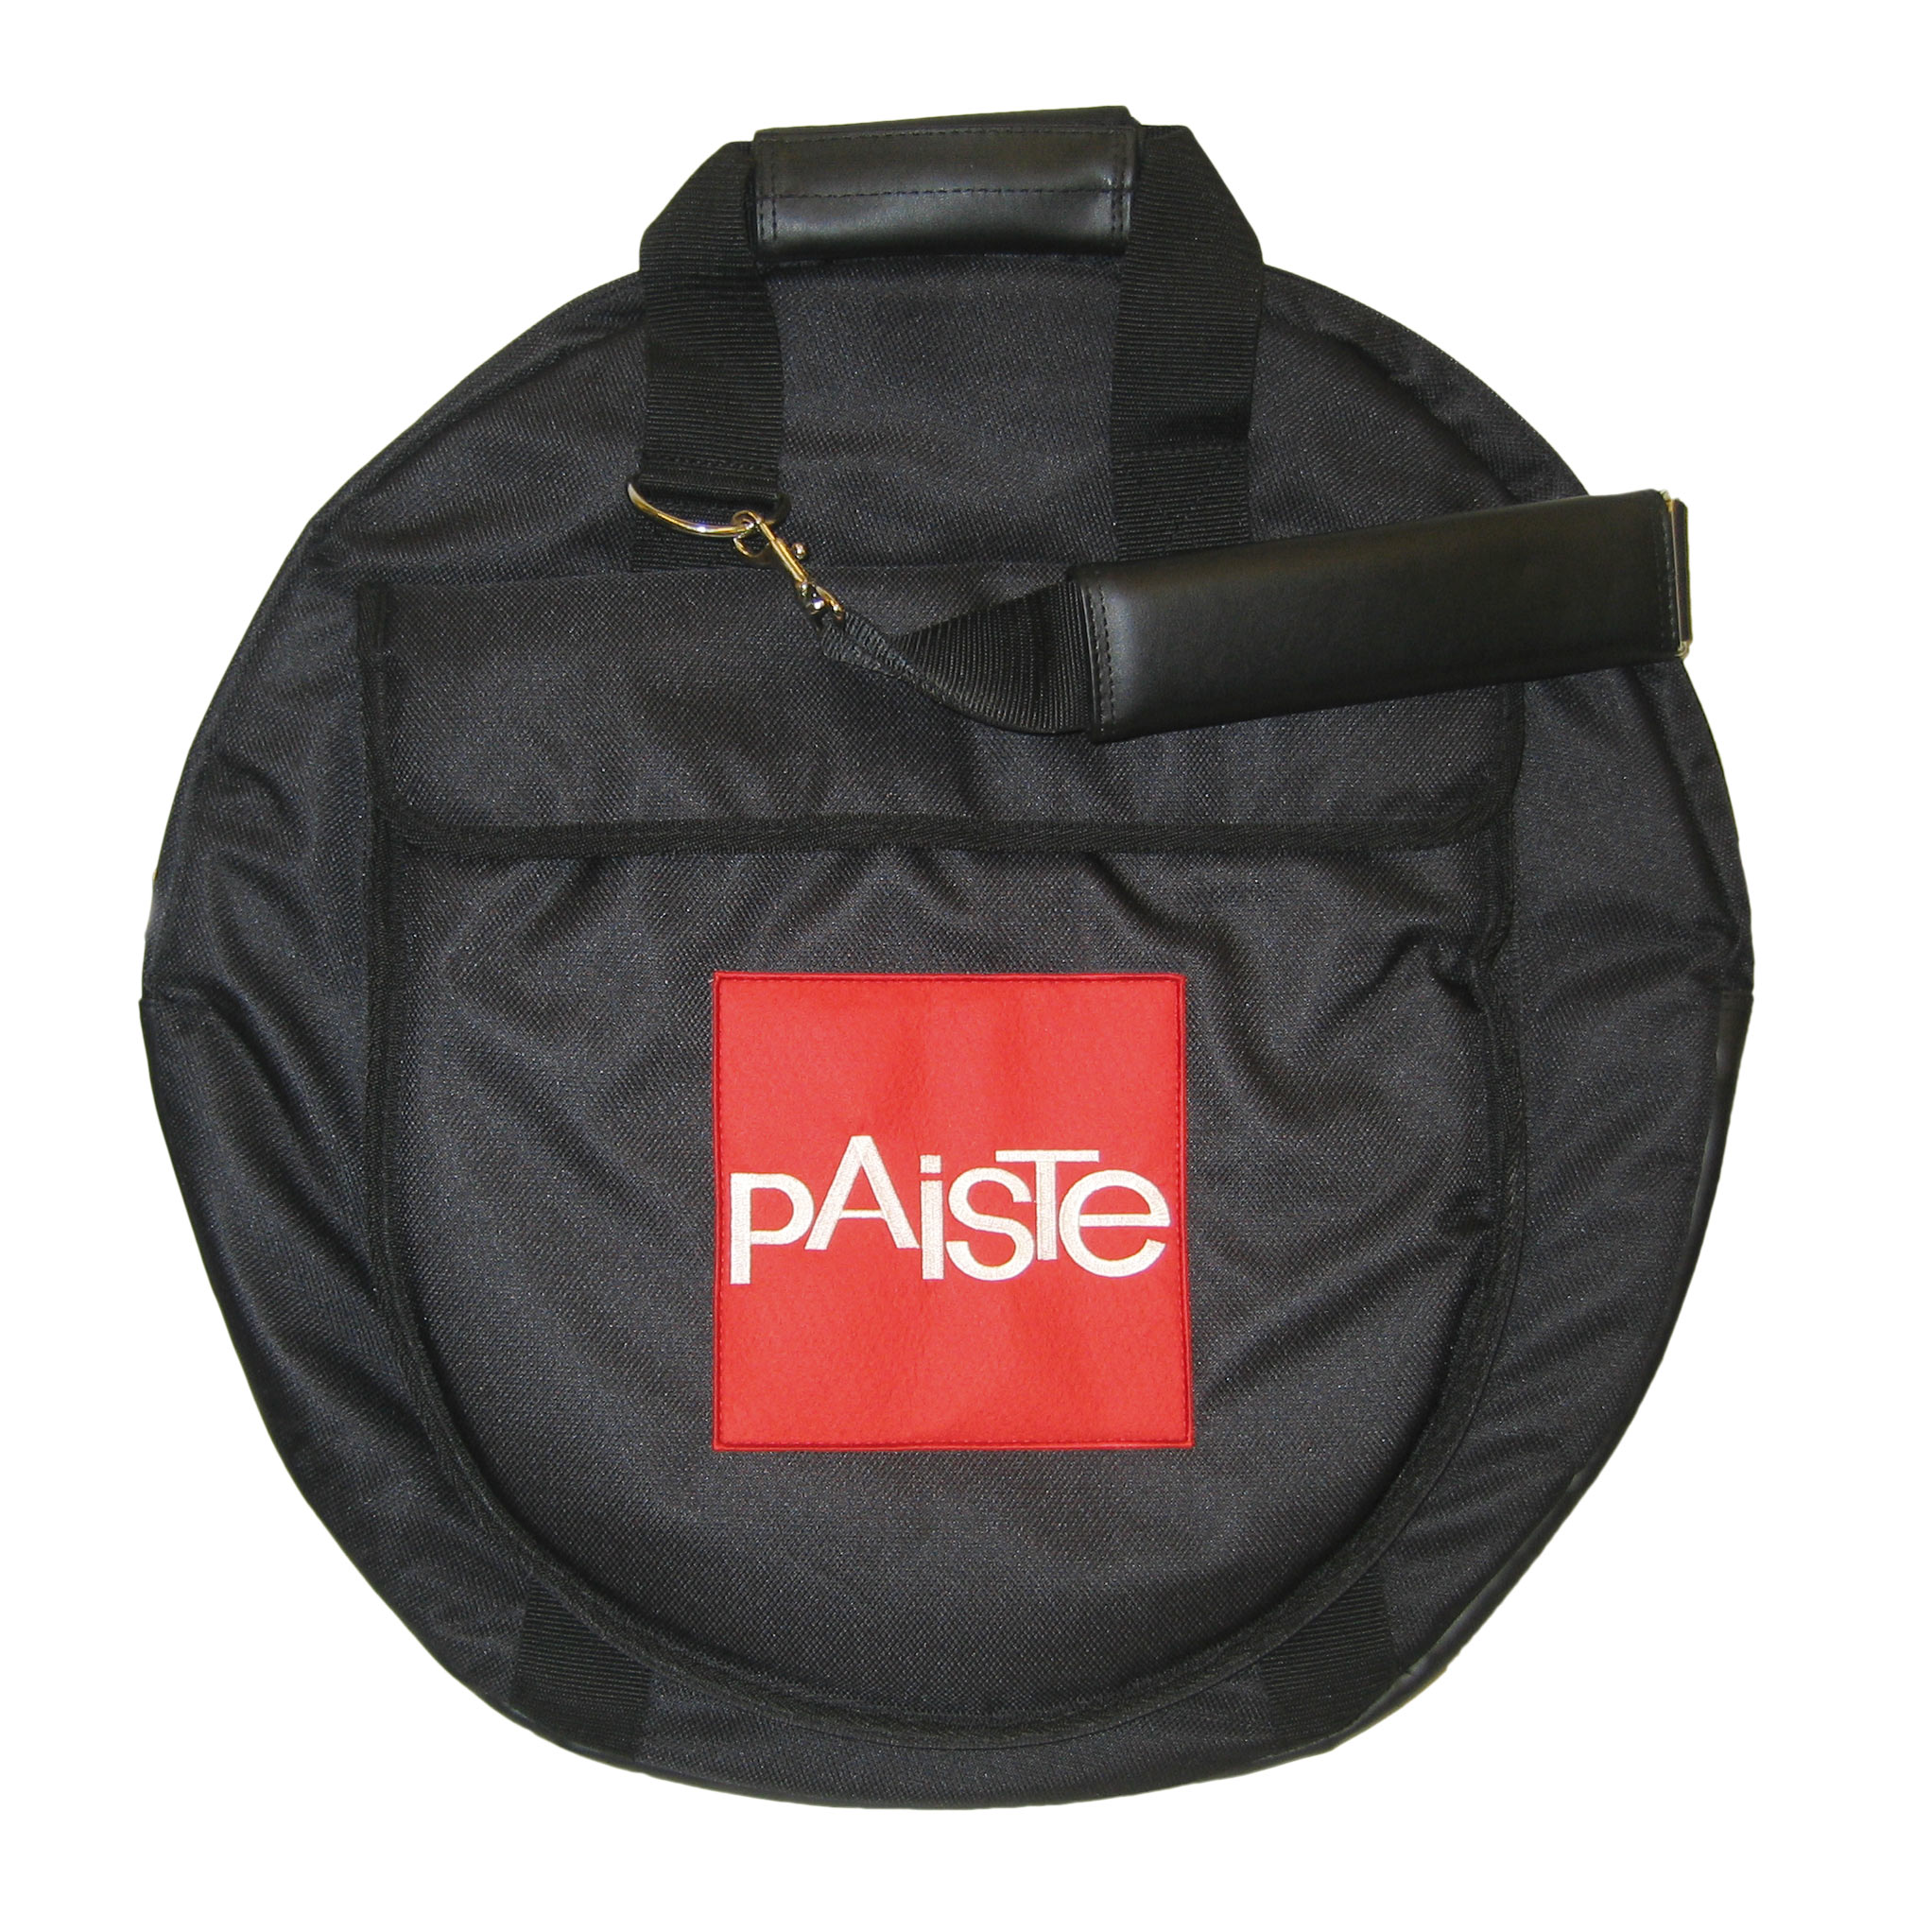 "Paiste 22"" Professional Cymbal Bag"